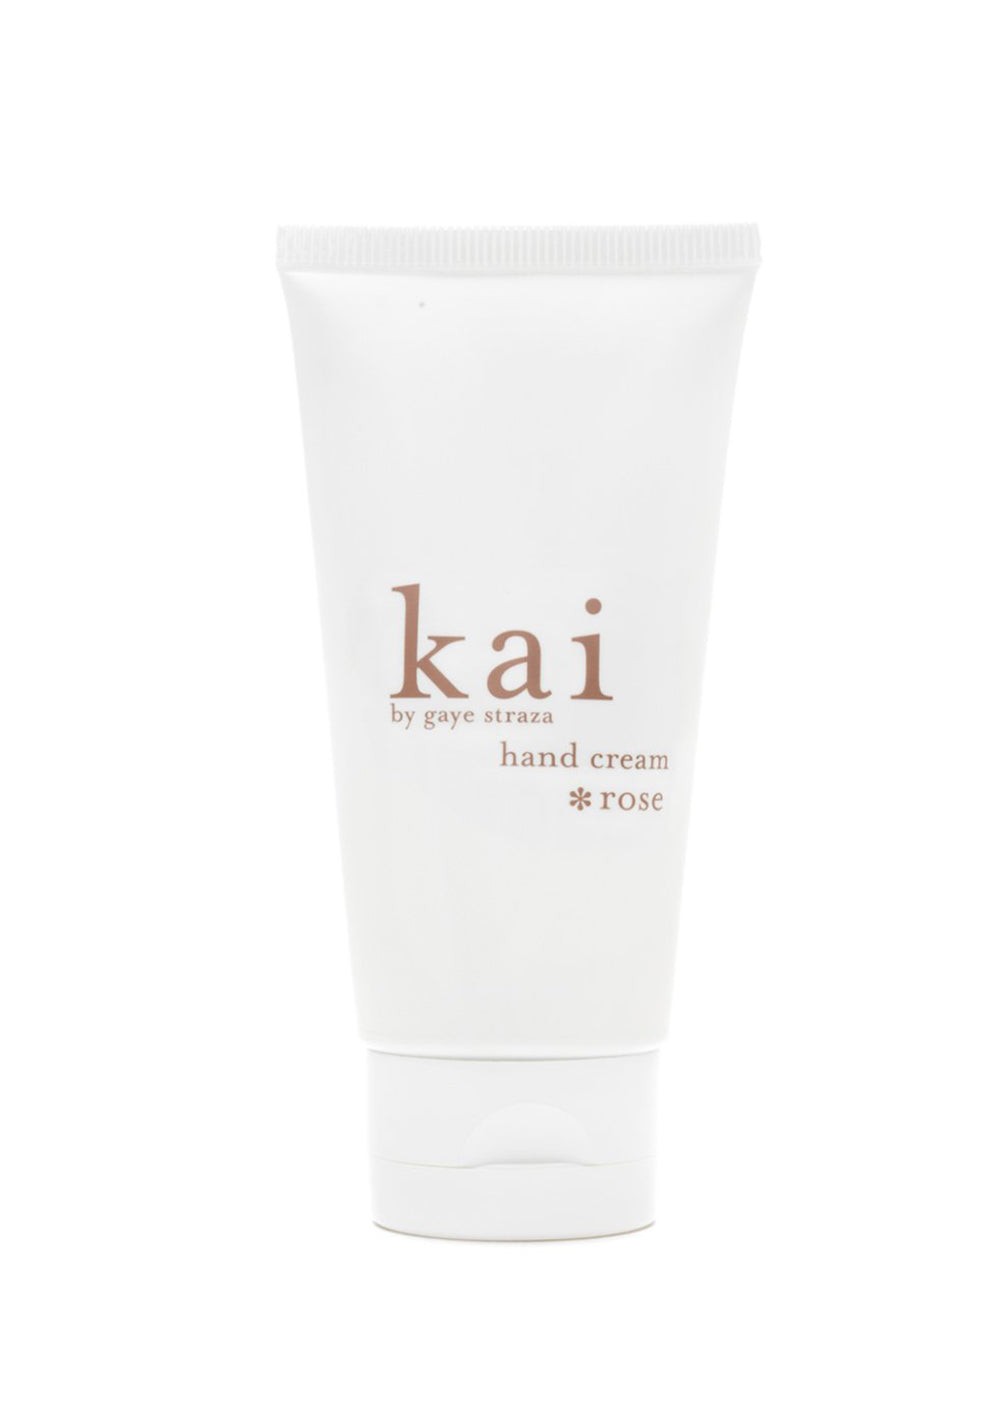 Kai fragrance Hand Cream |Rose|